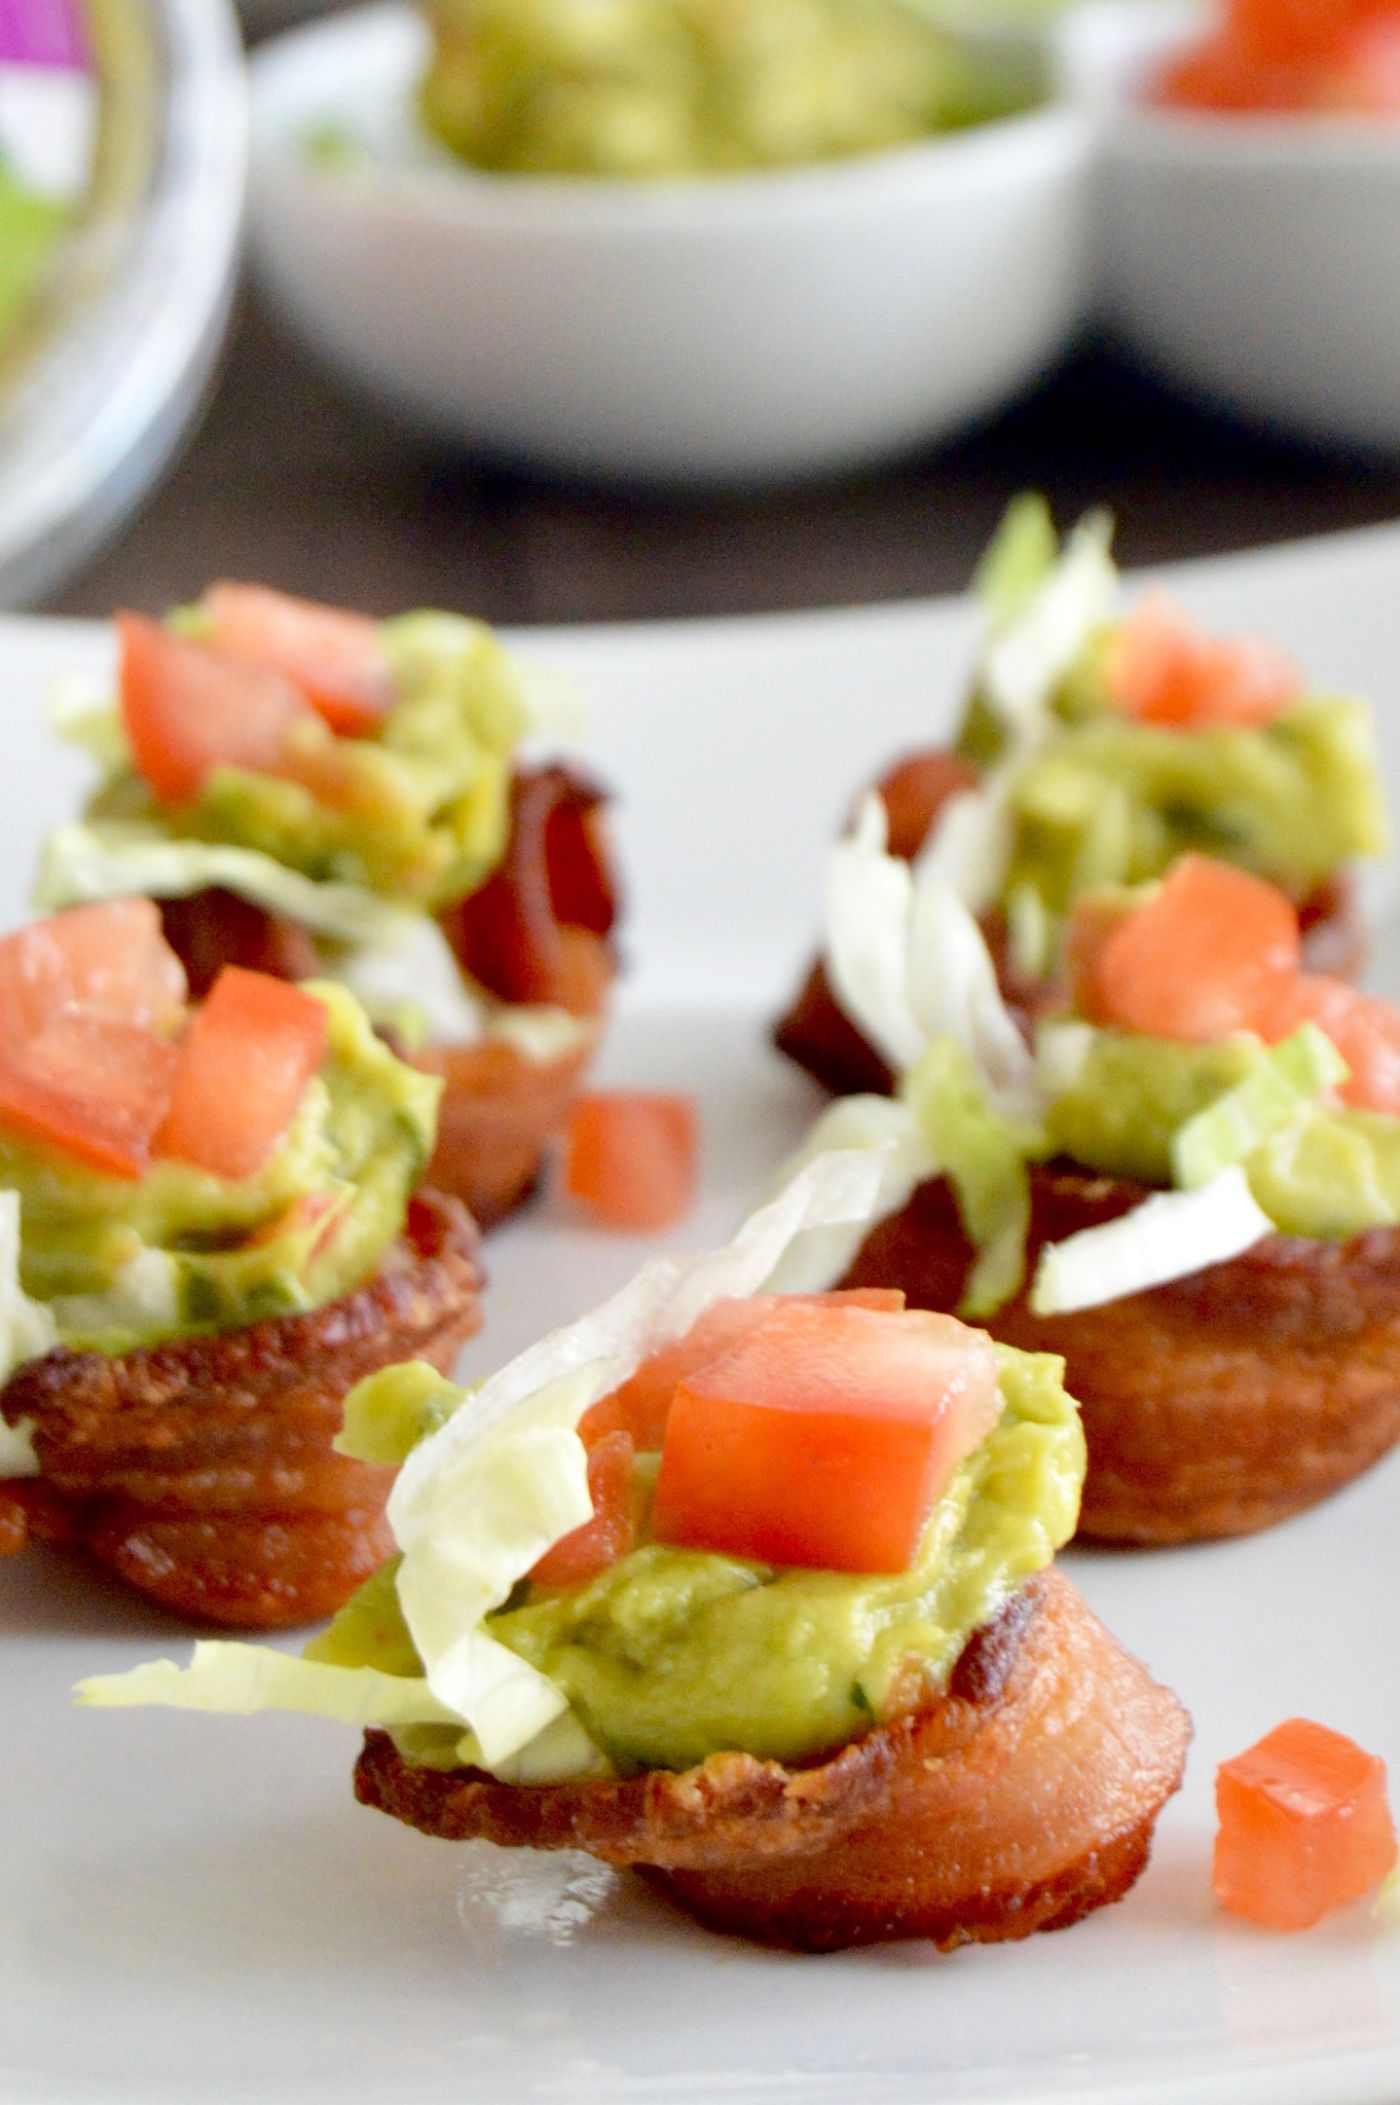 Guacamole BLT Bacon Cups are a low carb appetizer or snack that can be made in about 15 minutes. Crisp lettuce, juicy tomatoes a dollop of Guacamole all in a bite sized crispy bacon cup!